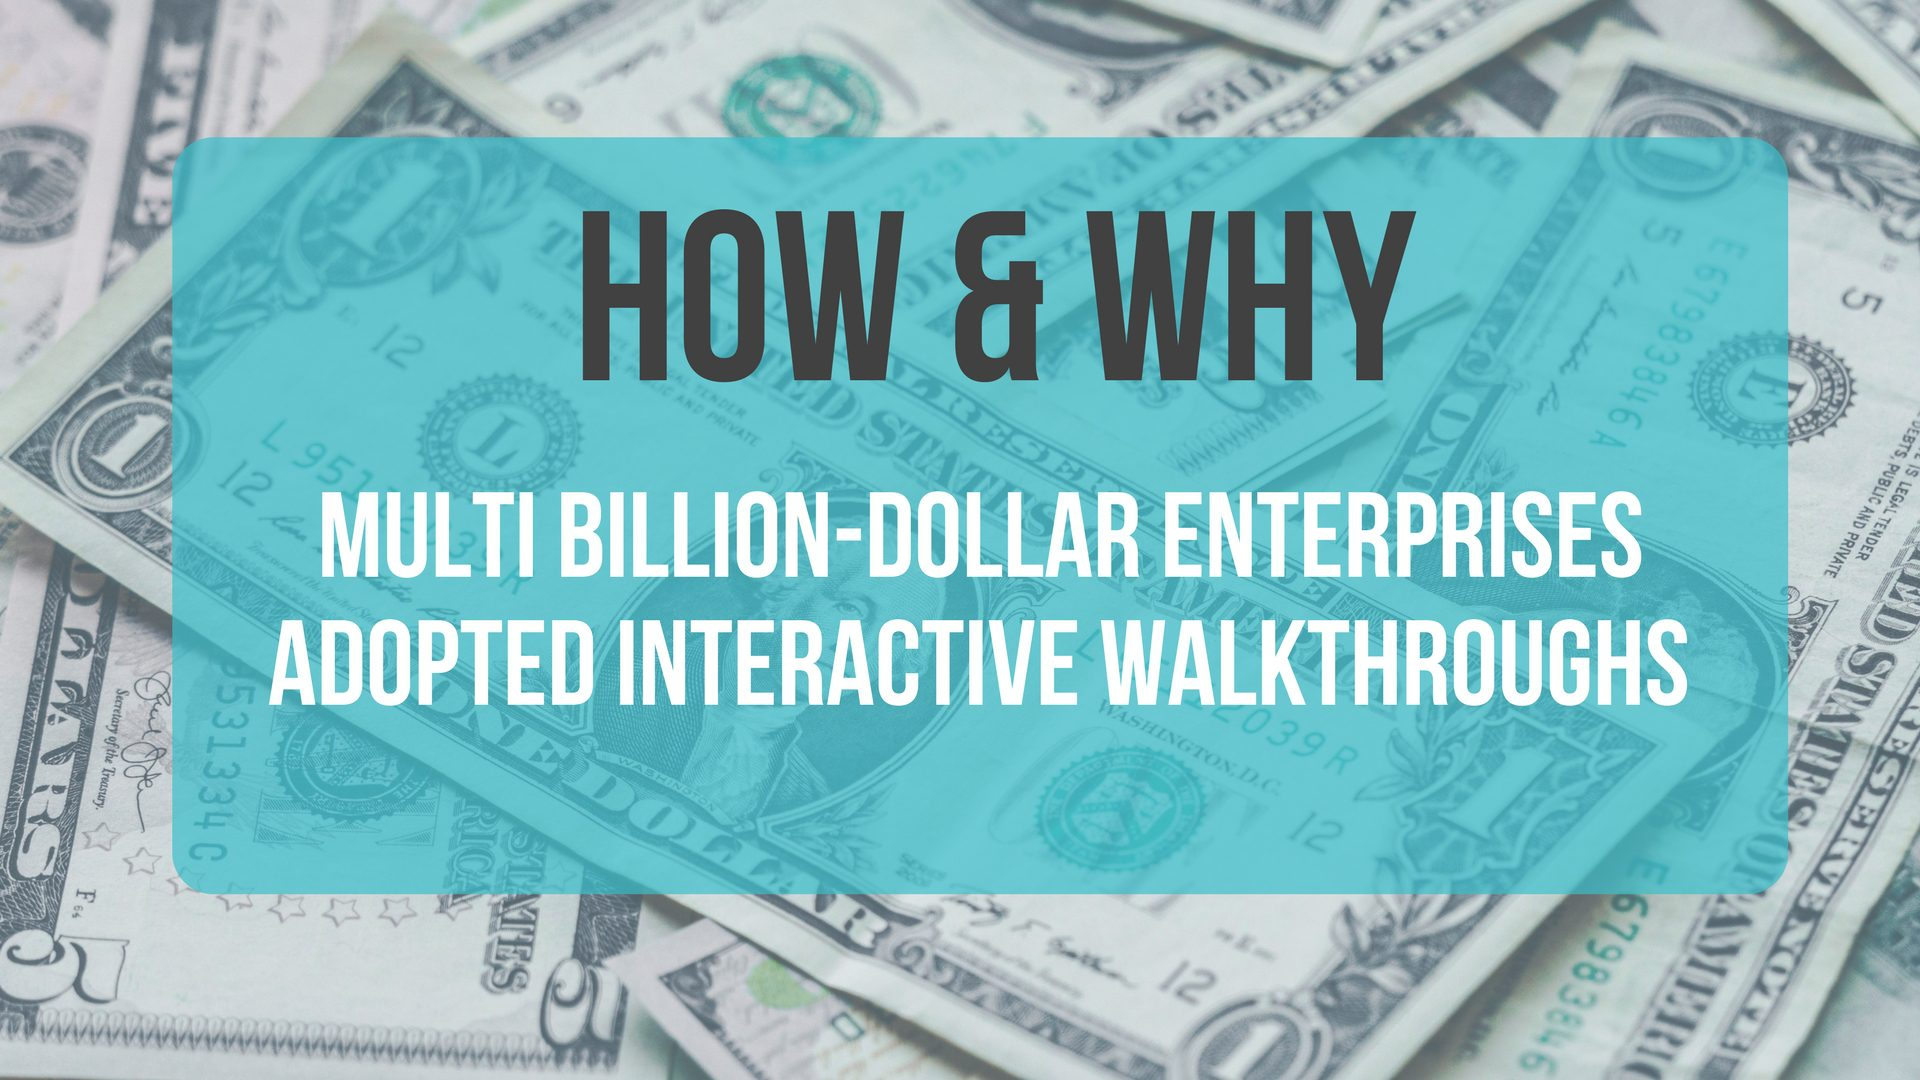 How & Why Multi Billion-dollar Enterprises Adopt Interactive Walkthroughs